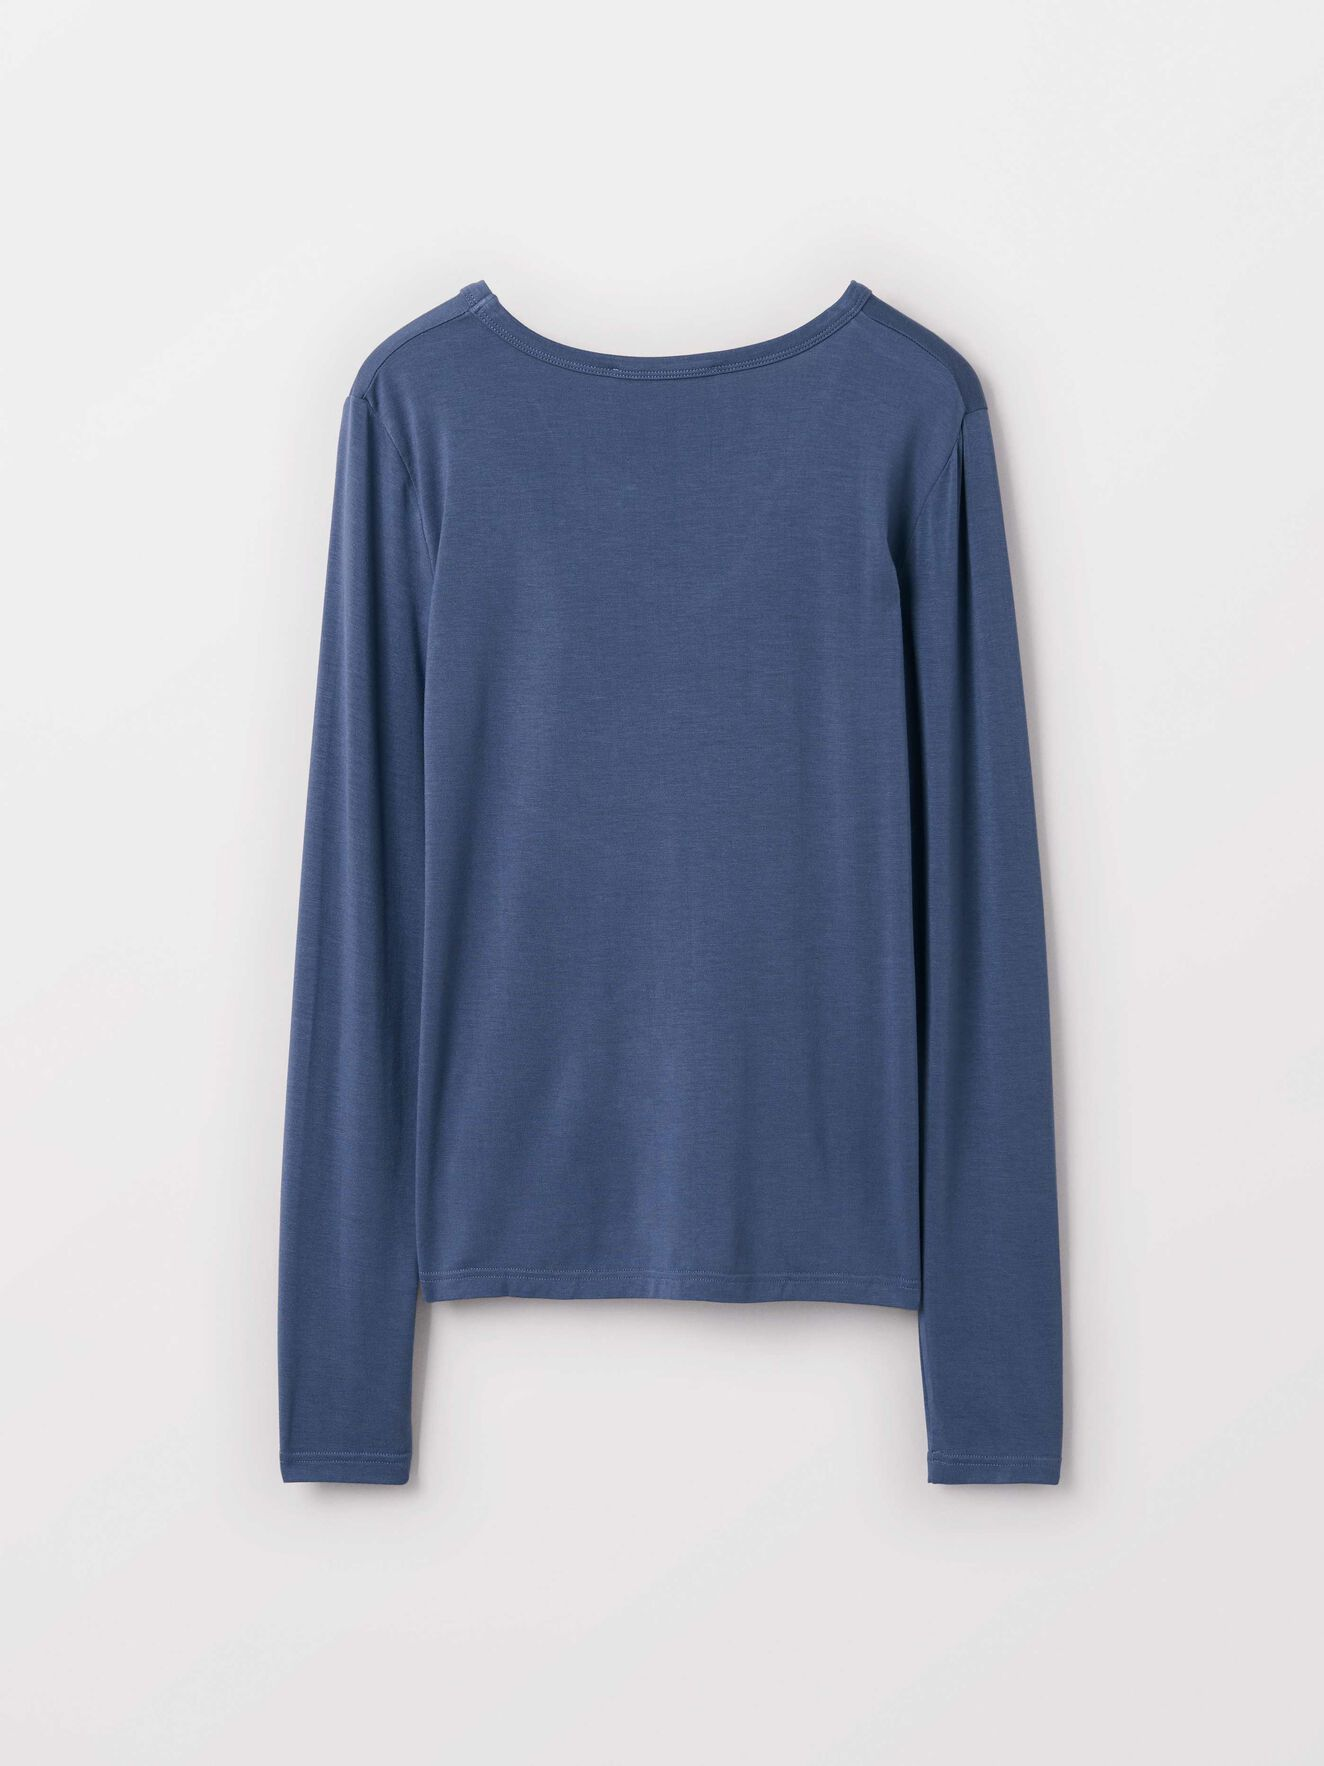 Hapalan T-Shirt in Soft blue from Tiger of Sweden